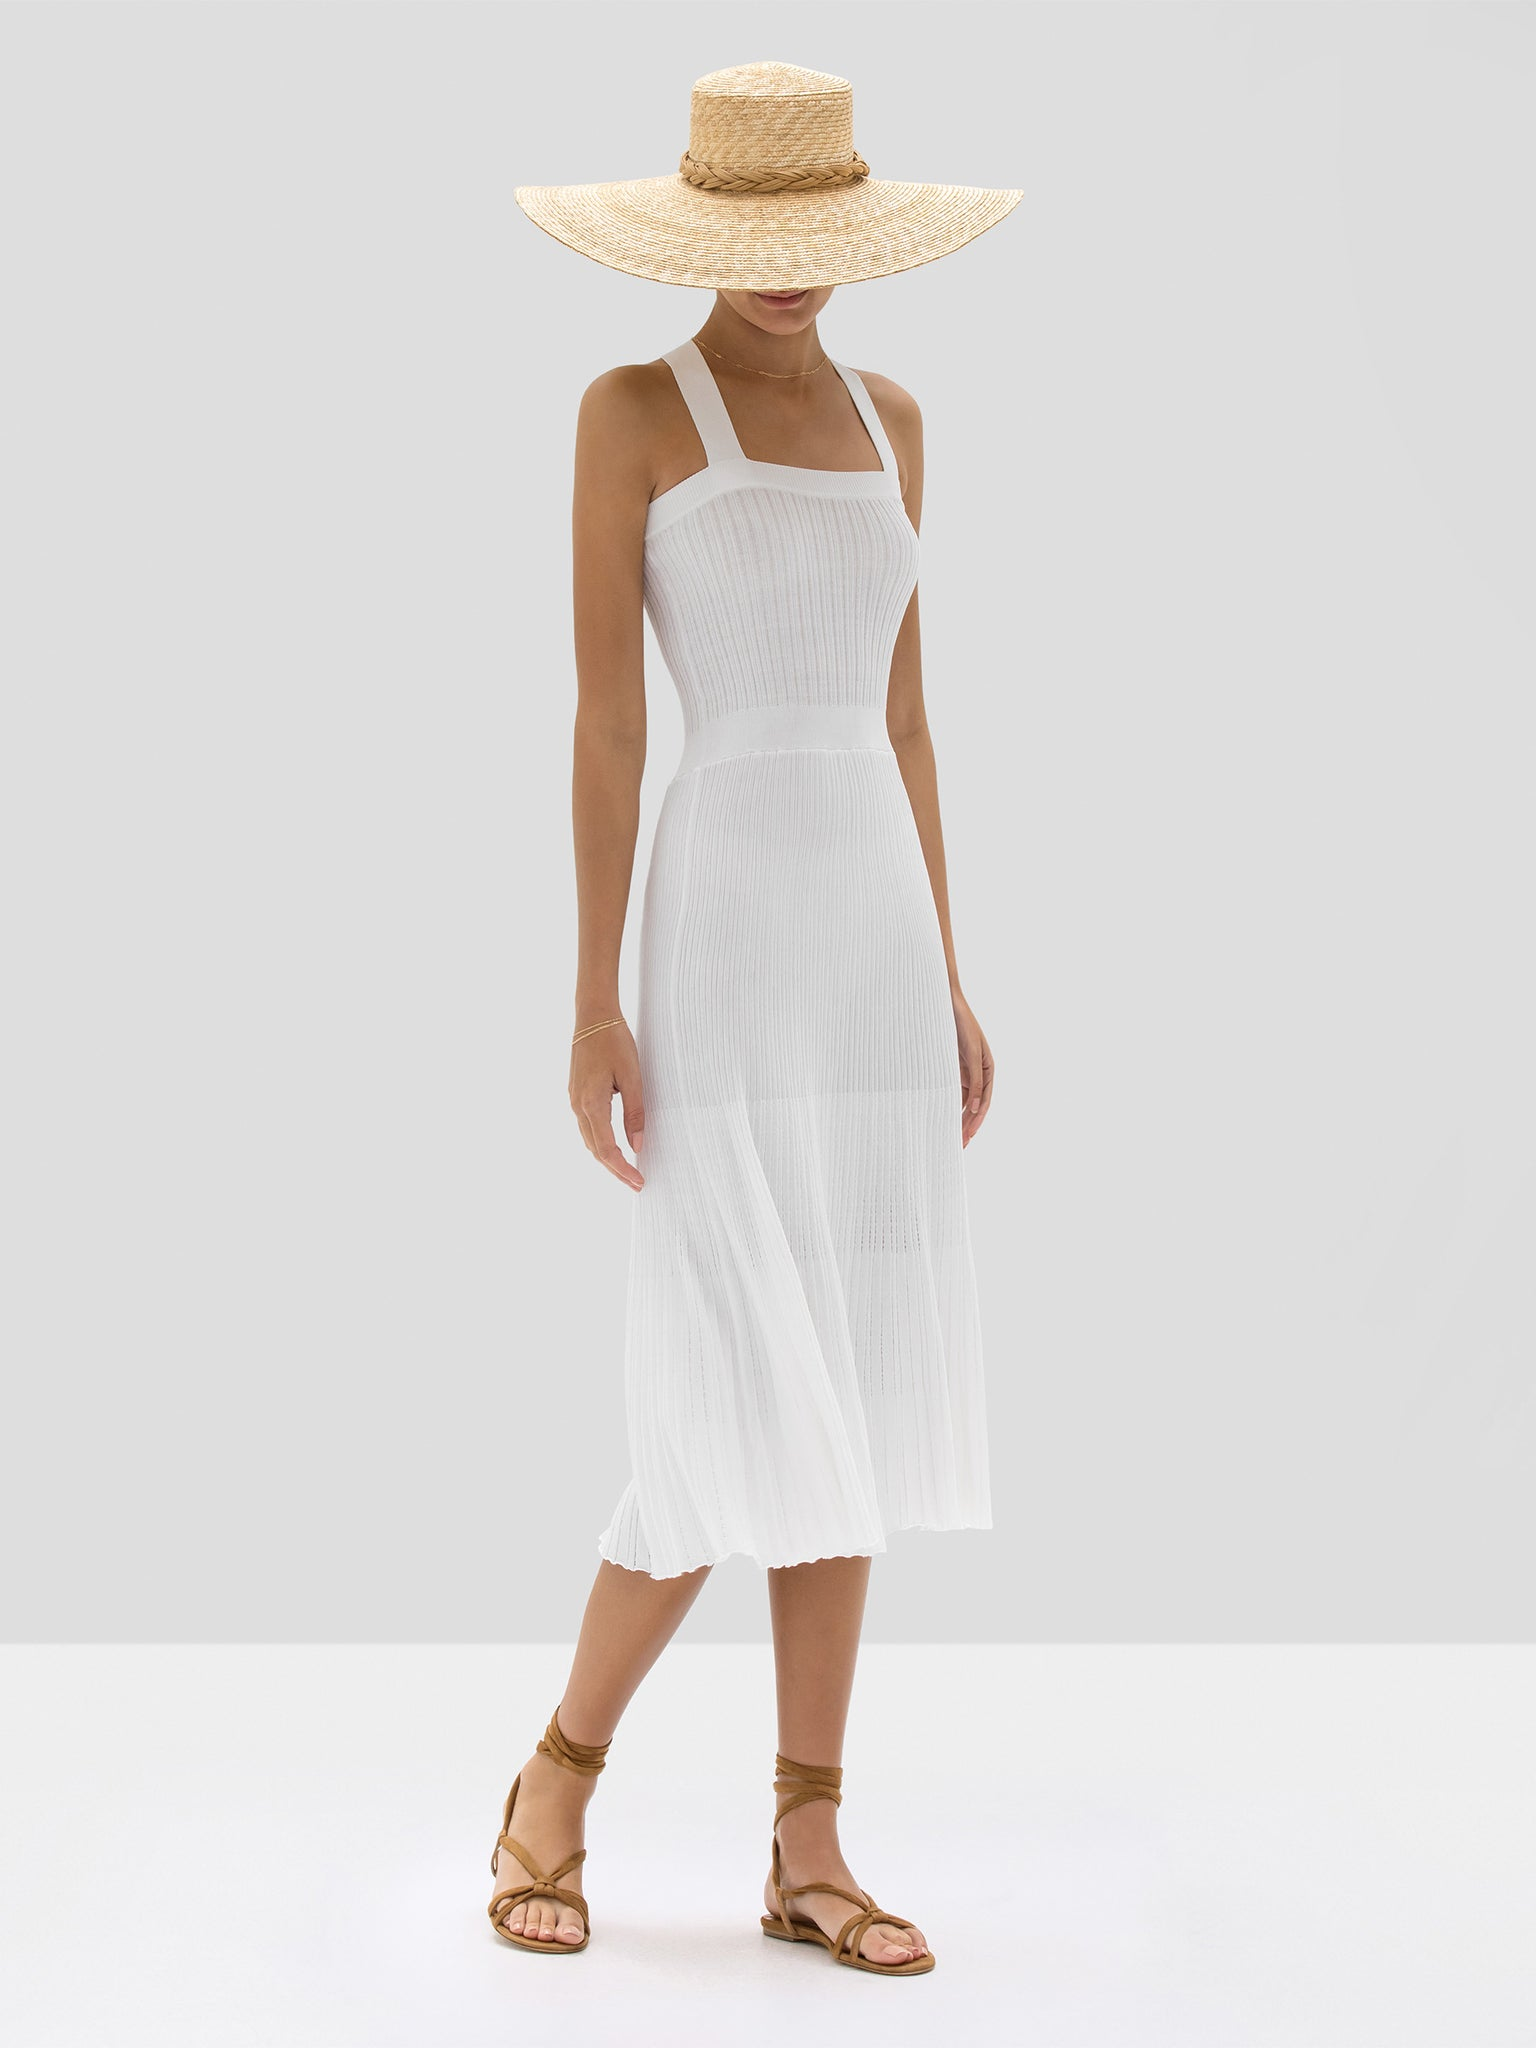 The Bess Dress in White from the Spring Summer 2020